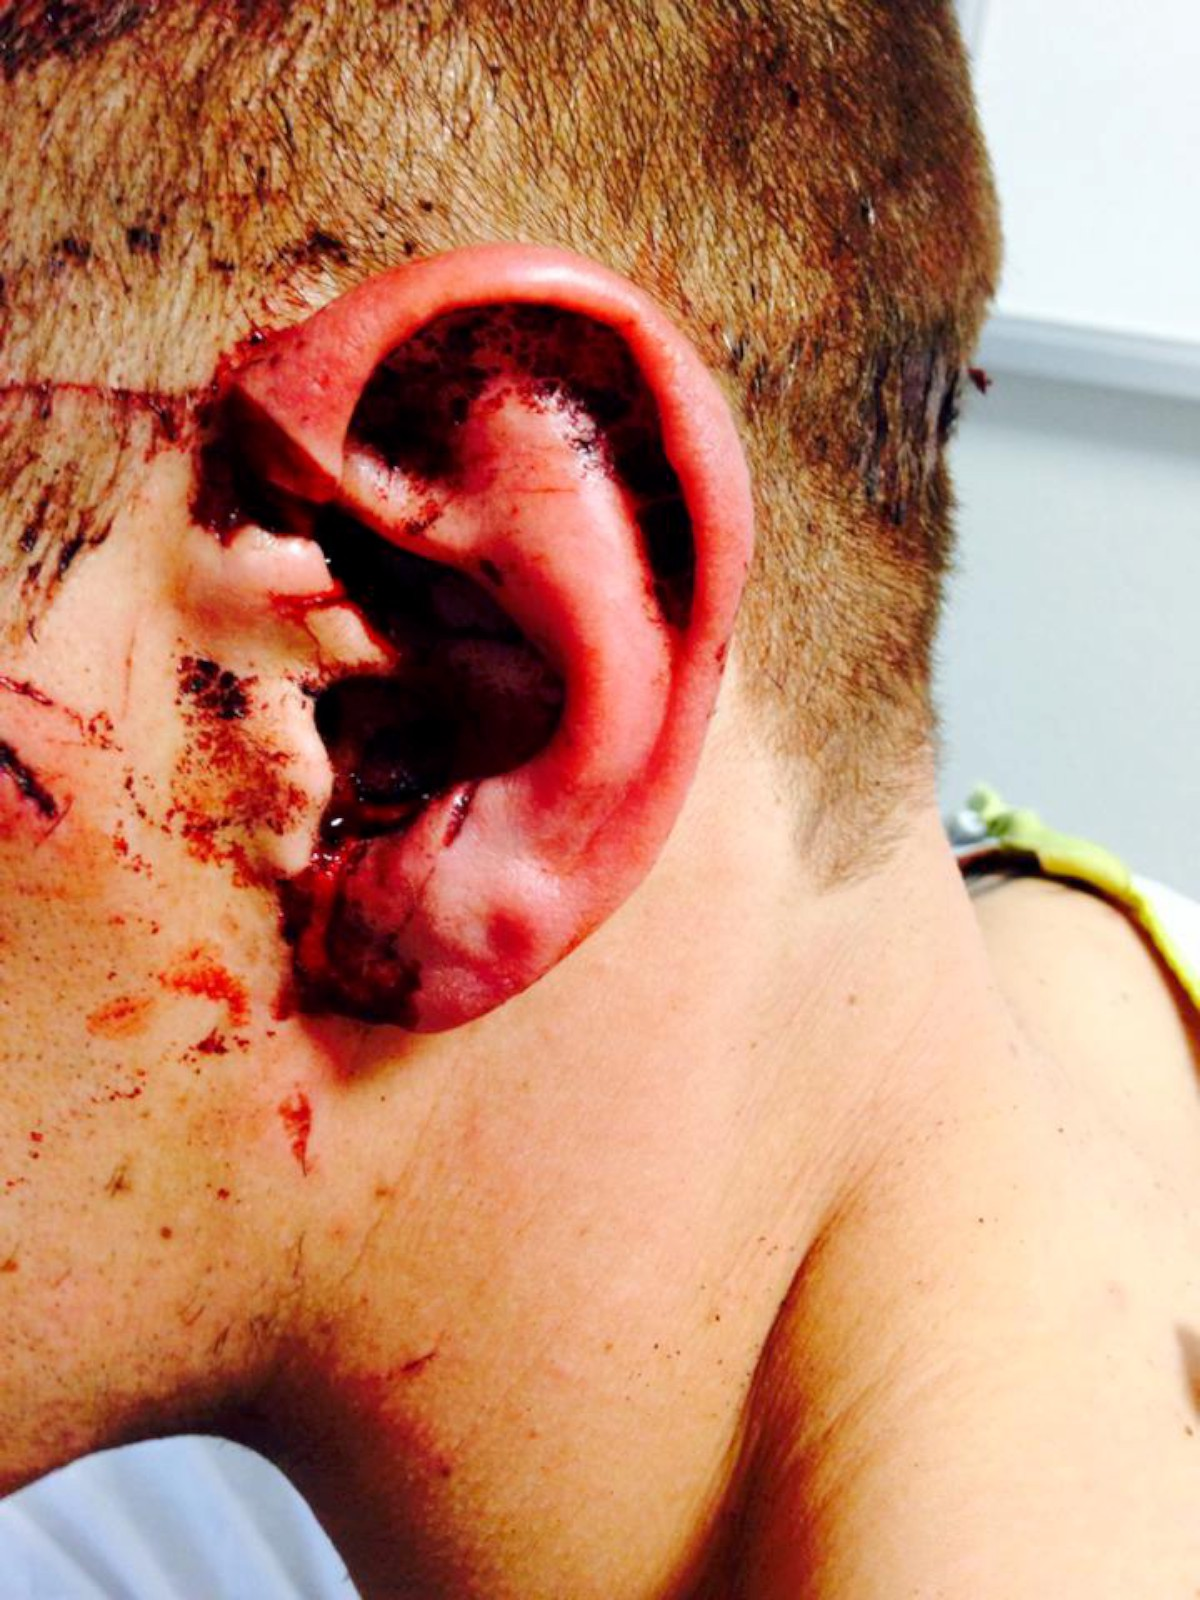 Knife victim 'stabbed' in the head goes on five mile mystery journey